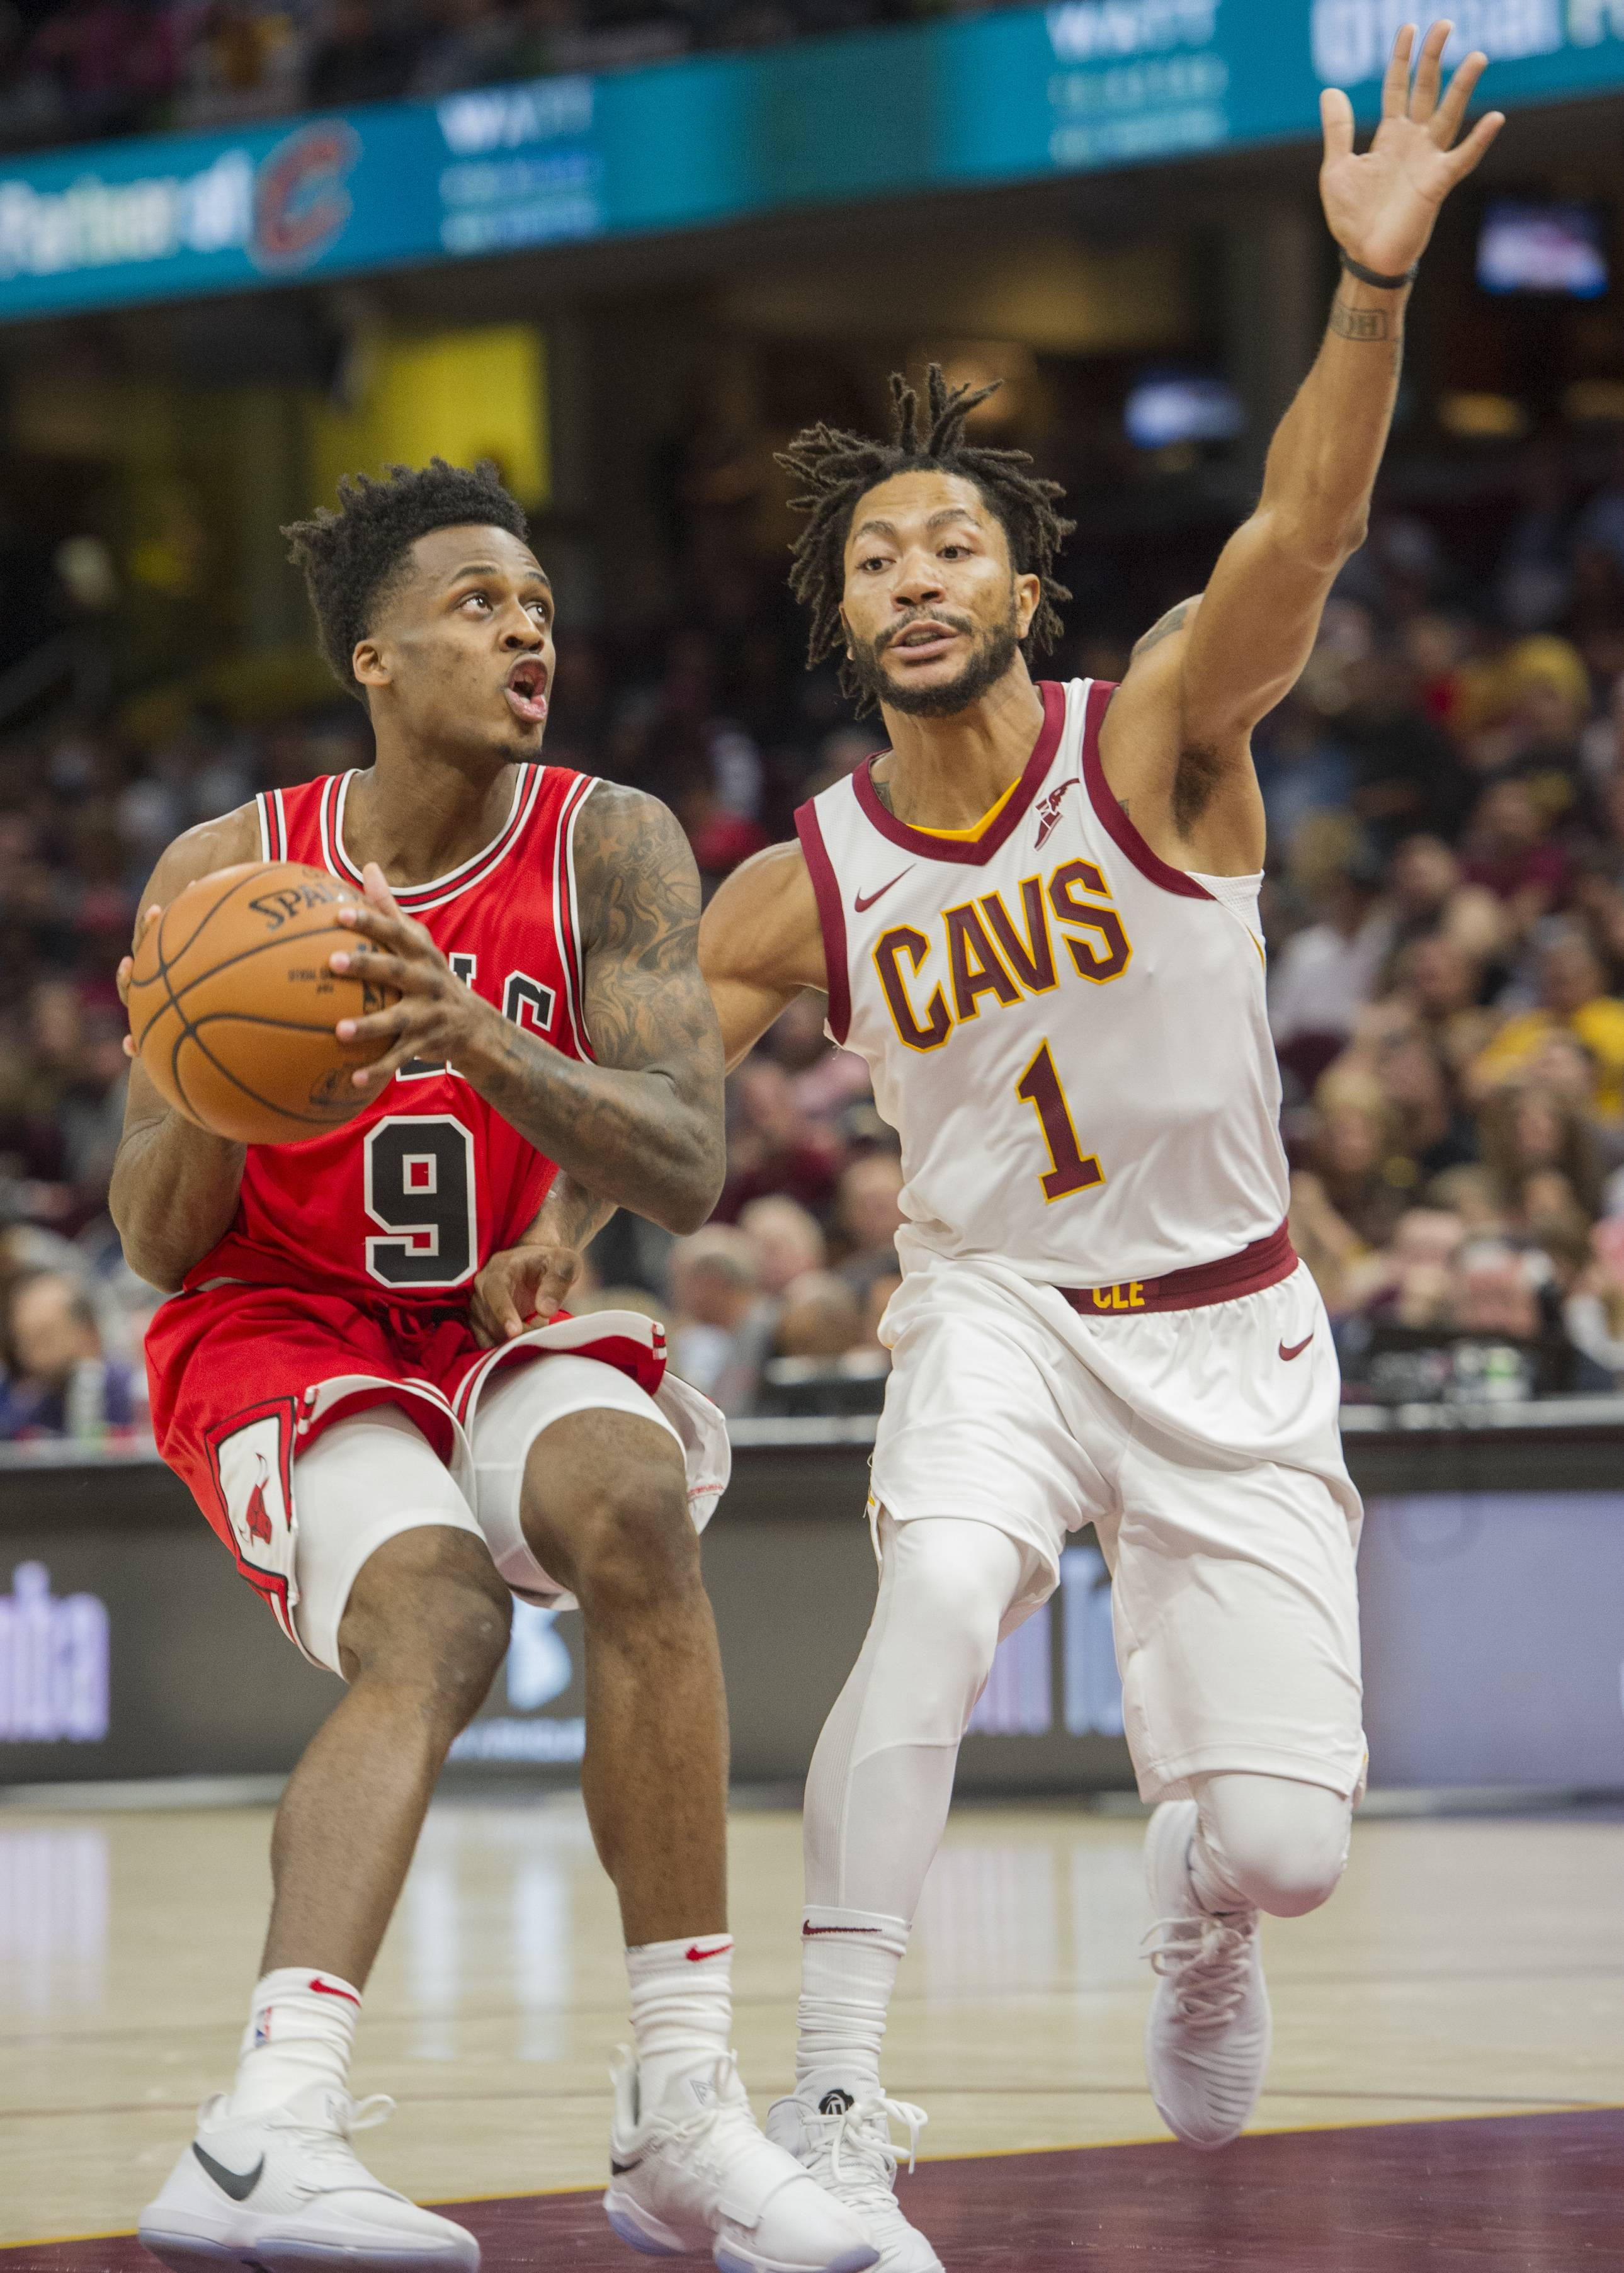 Chicago Bulls' Antonio Blakeney (9) prepares to shoot past Cleveland Cavaliers' Derrick Rose (1) during the first half of an NBA preseason basketball game in Cleveland, Tuesday, Oct. 10, 2017.